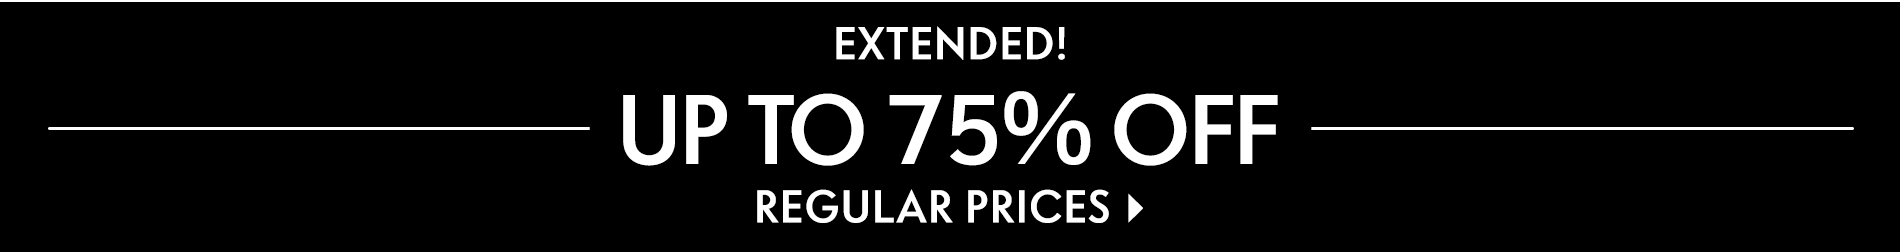 Extended! Up to 75% off regular prices